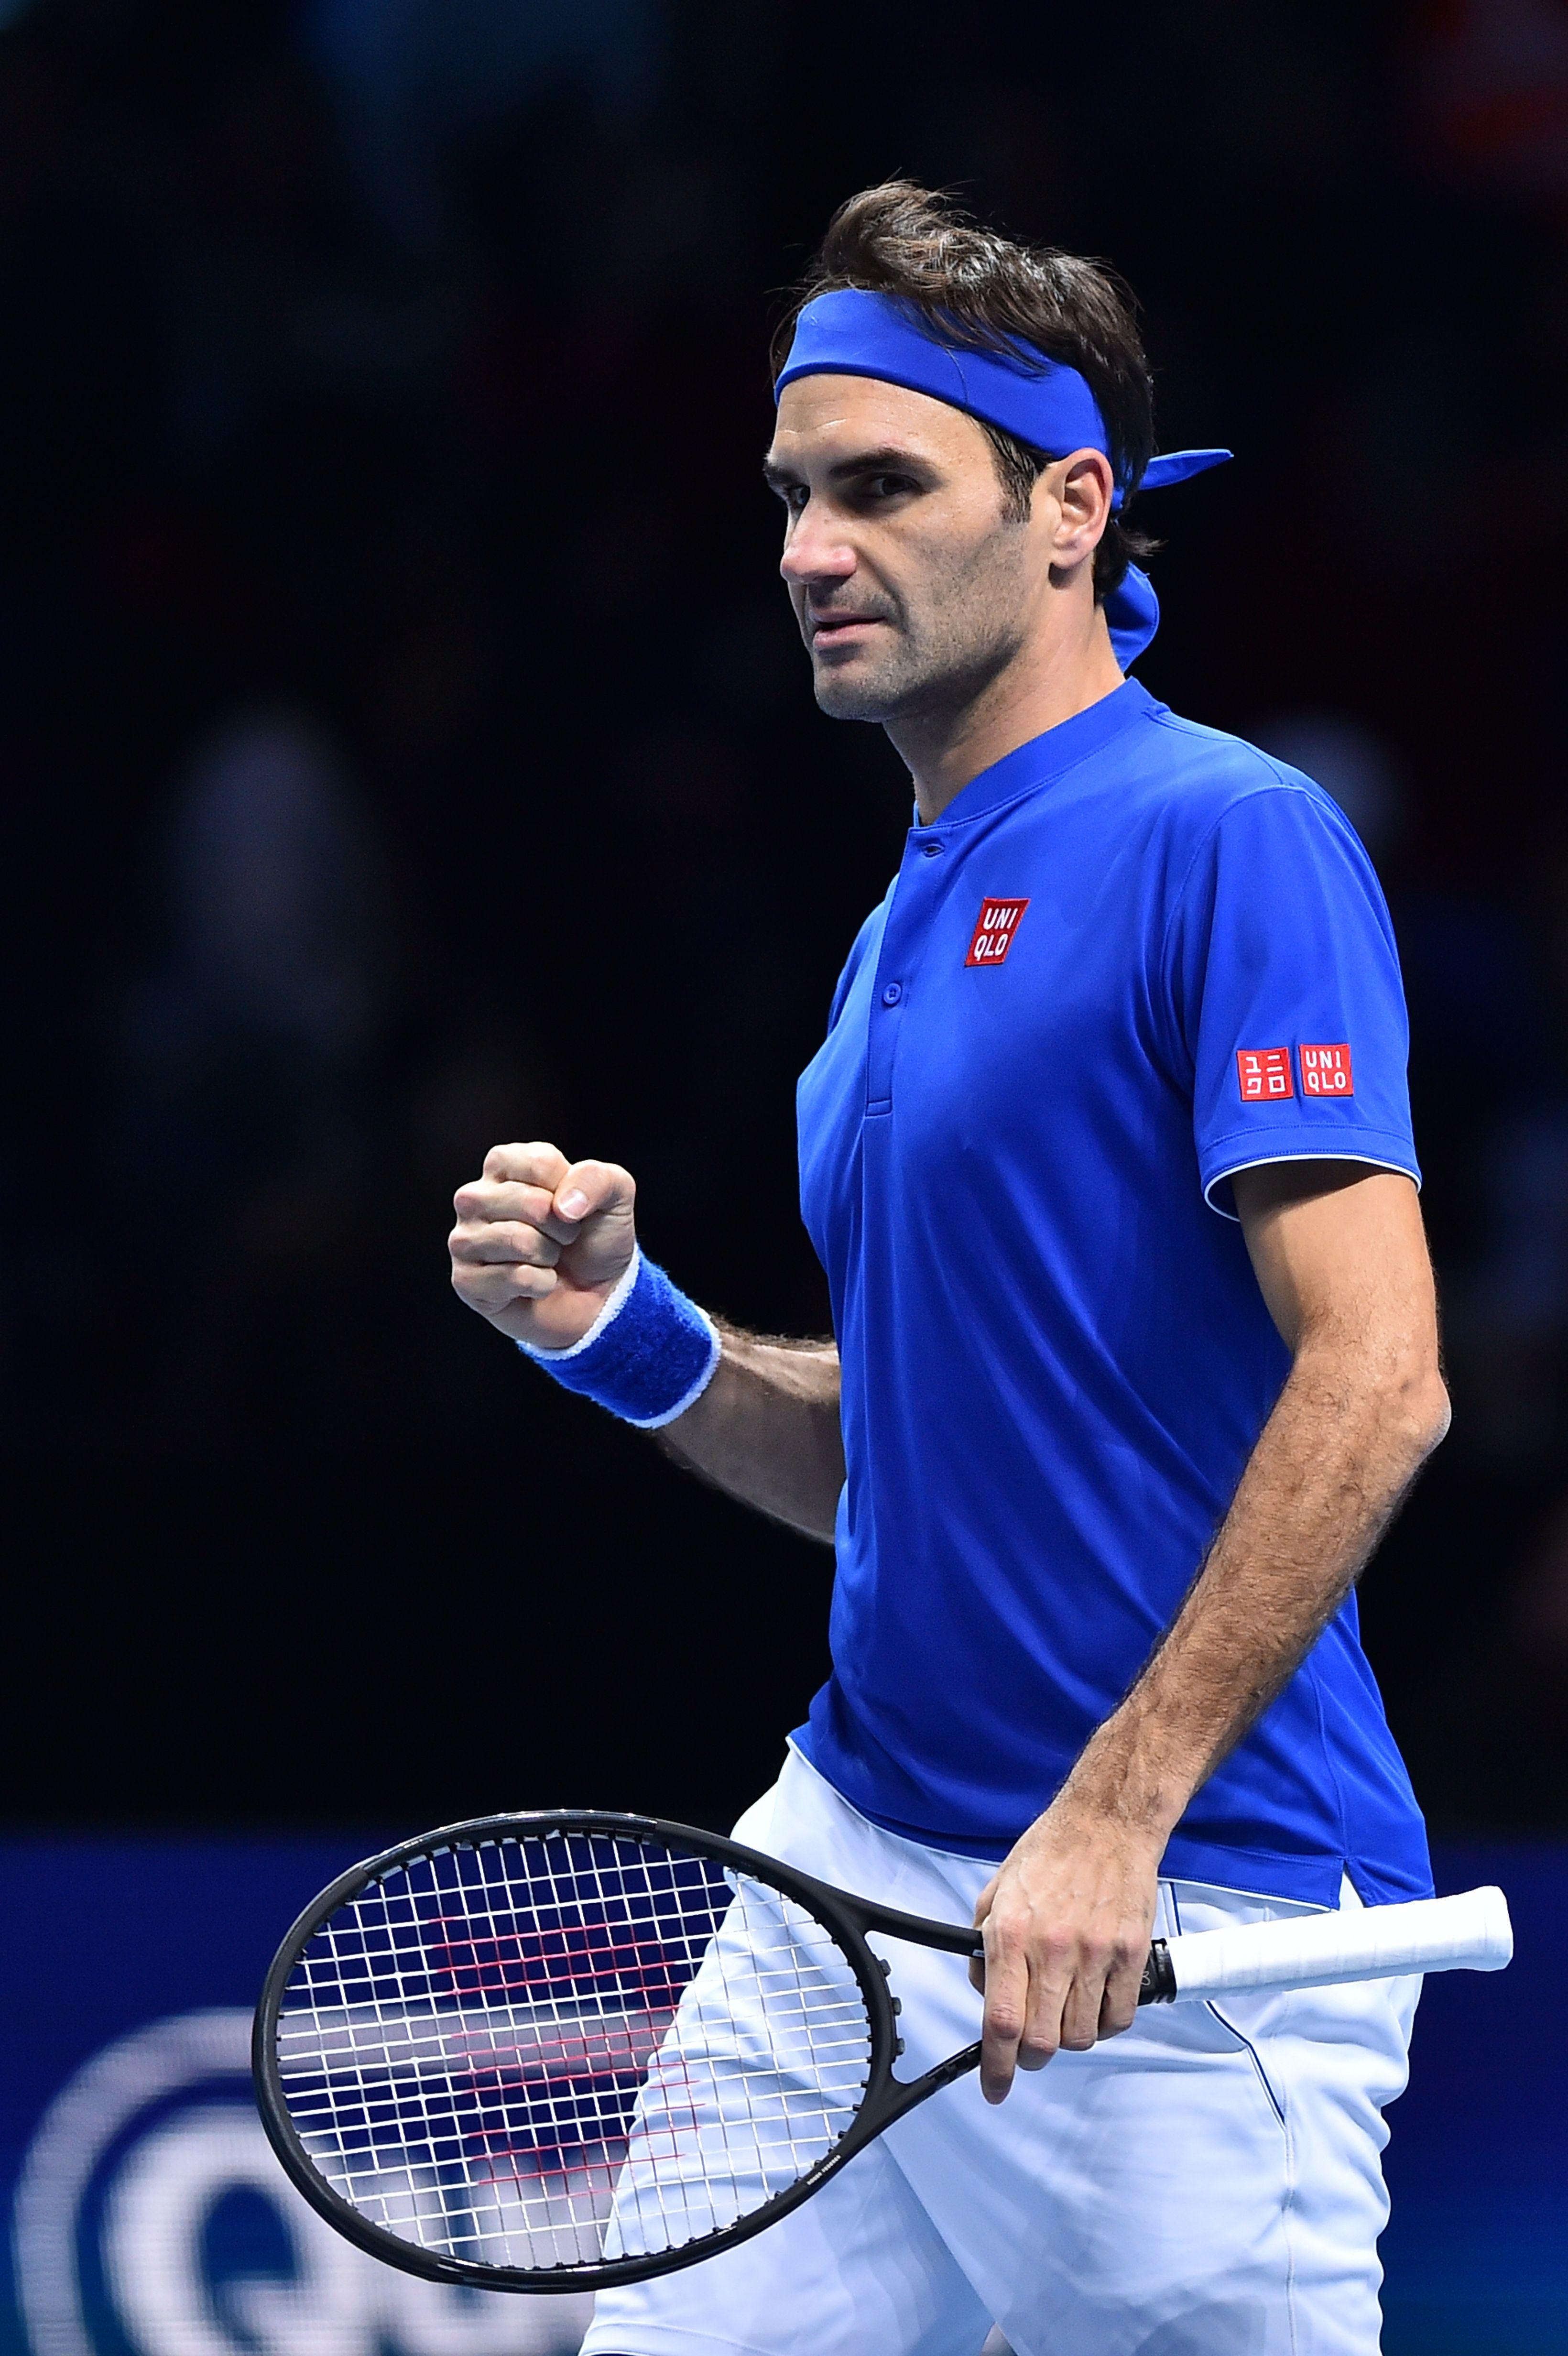 Federer must now beat Kevin Anderson to reach the semi-finals